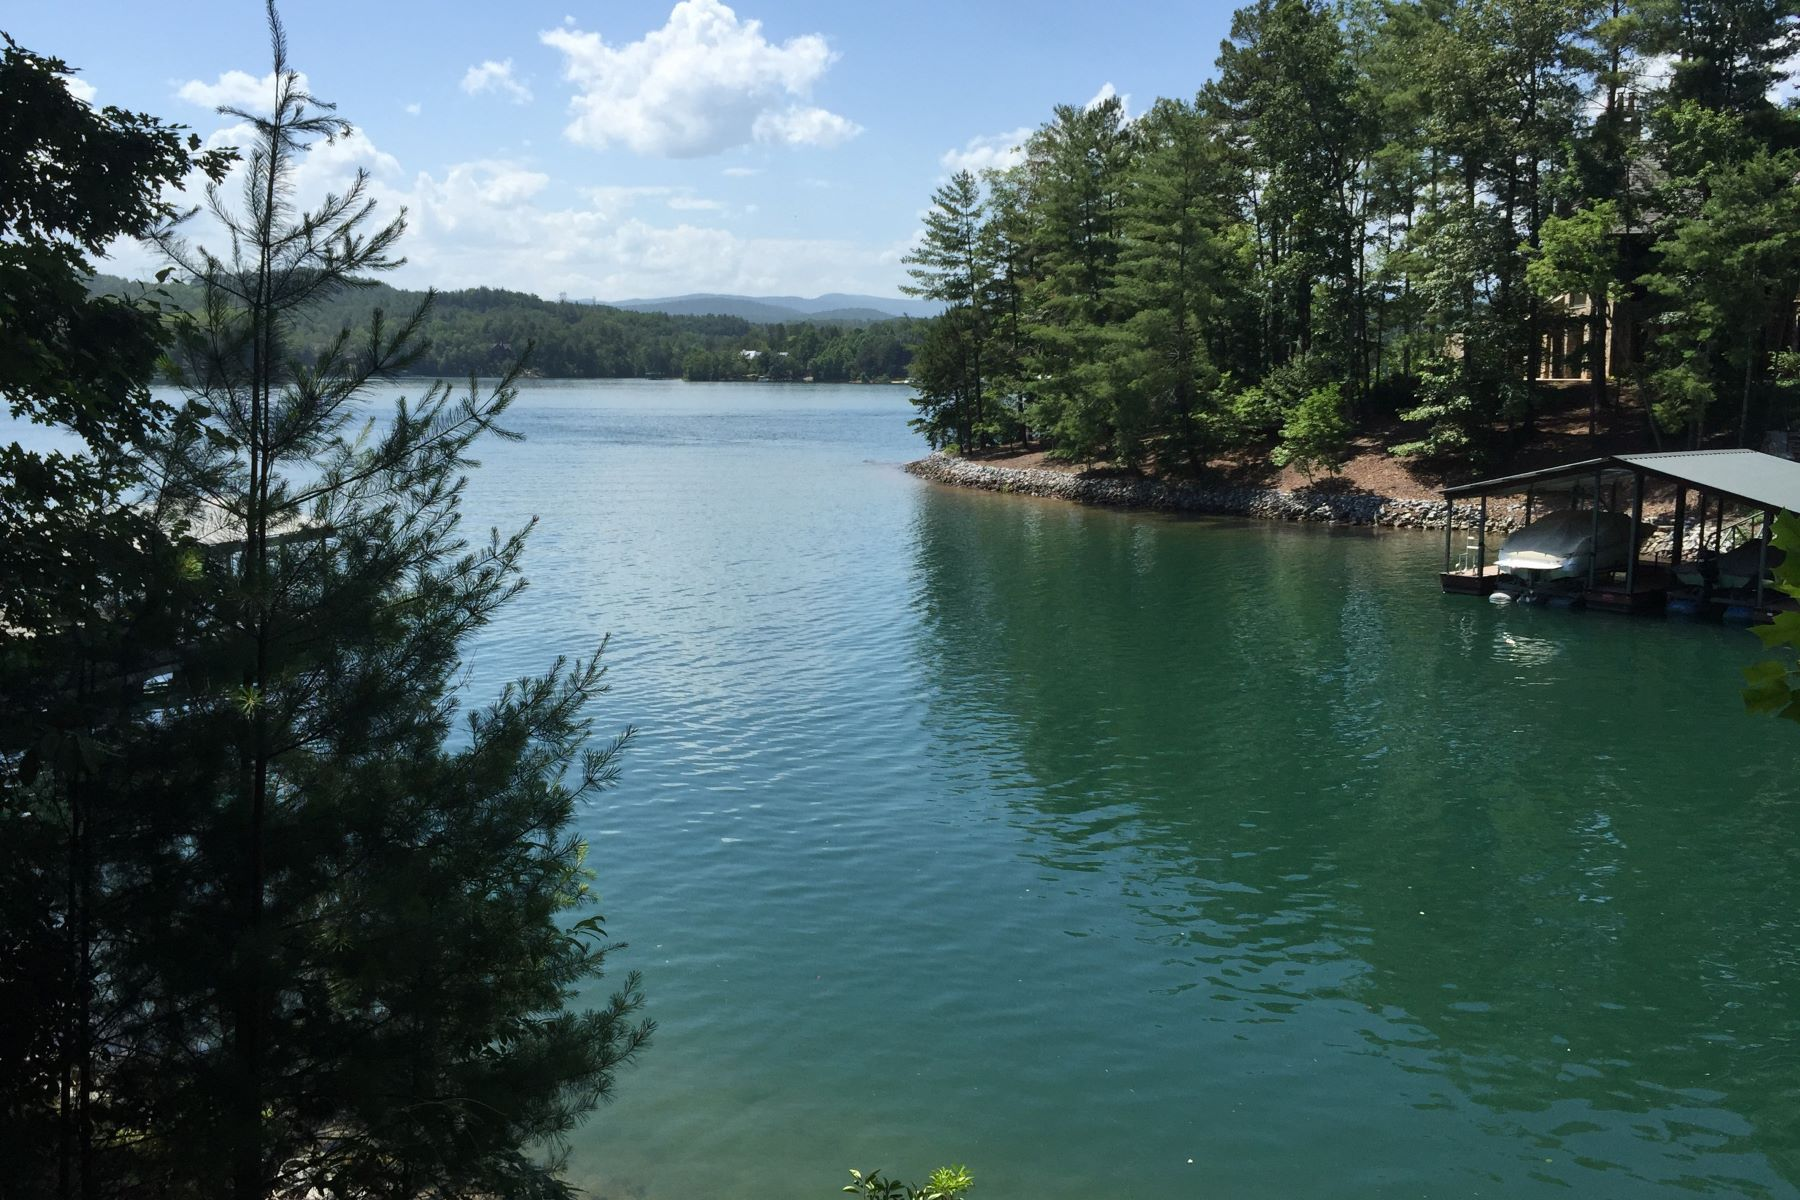 土地,用地 为 销售 在 Ideal Lakefront Homesite! S39, The Cliffs At Keowee Vineyards, Sunset, 南卡罗来纳州, 29685 美国